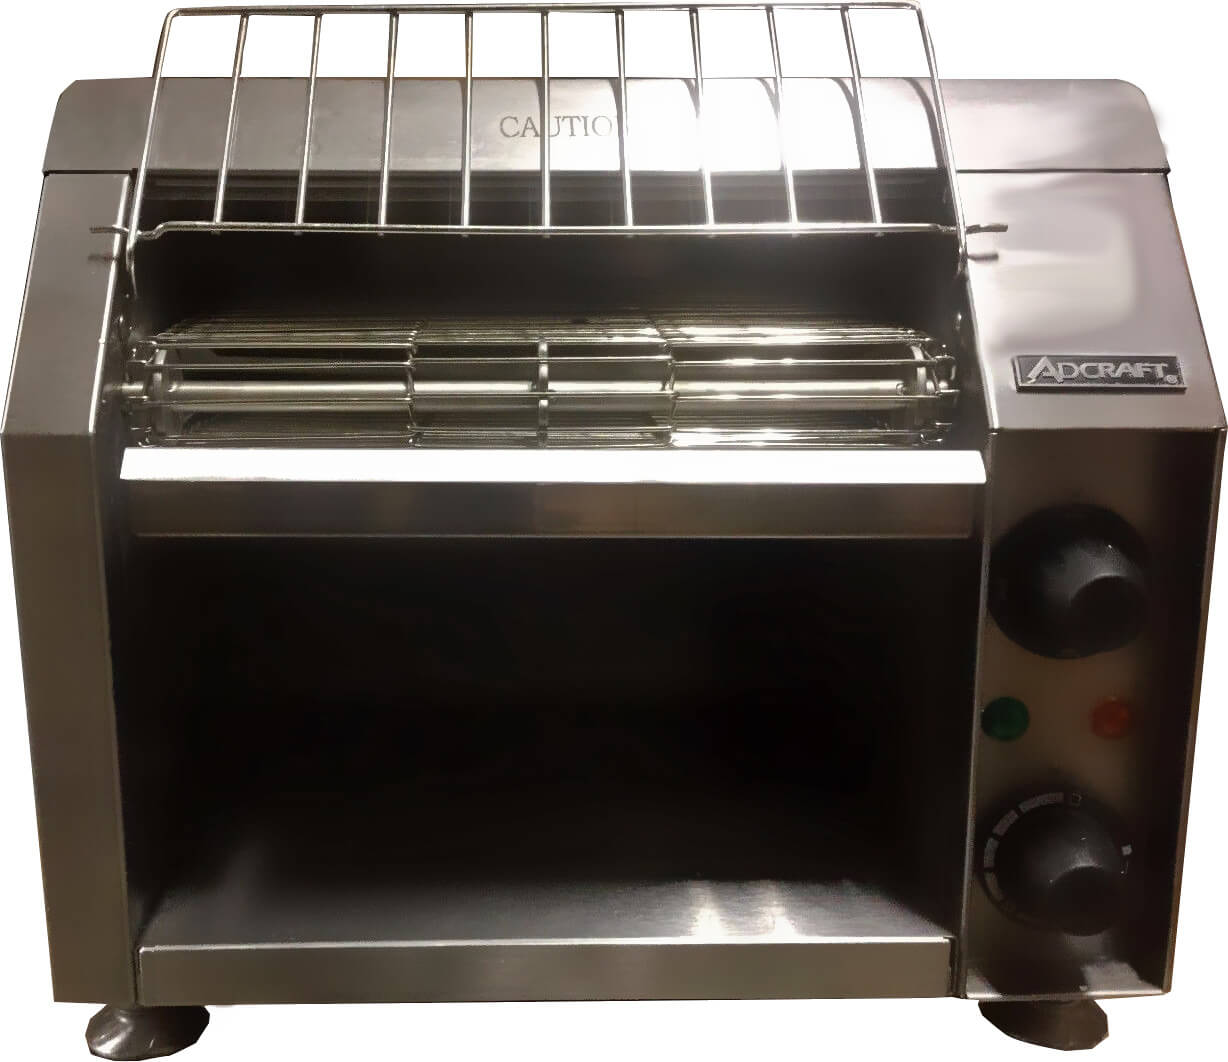 manual for admiral bare33009 easy clean stove